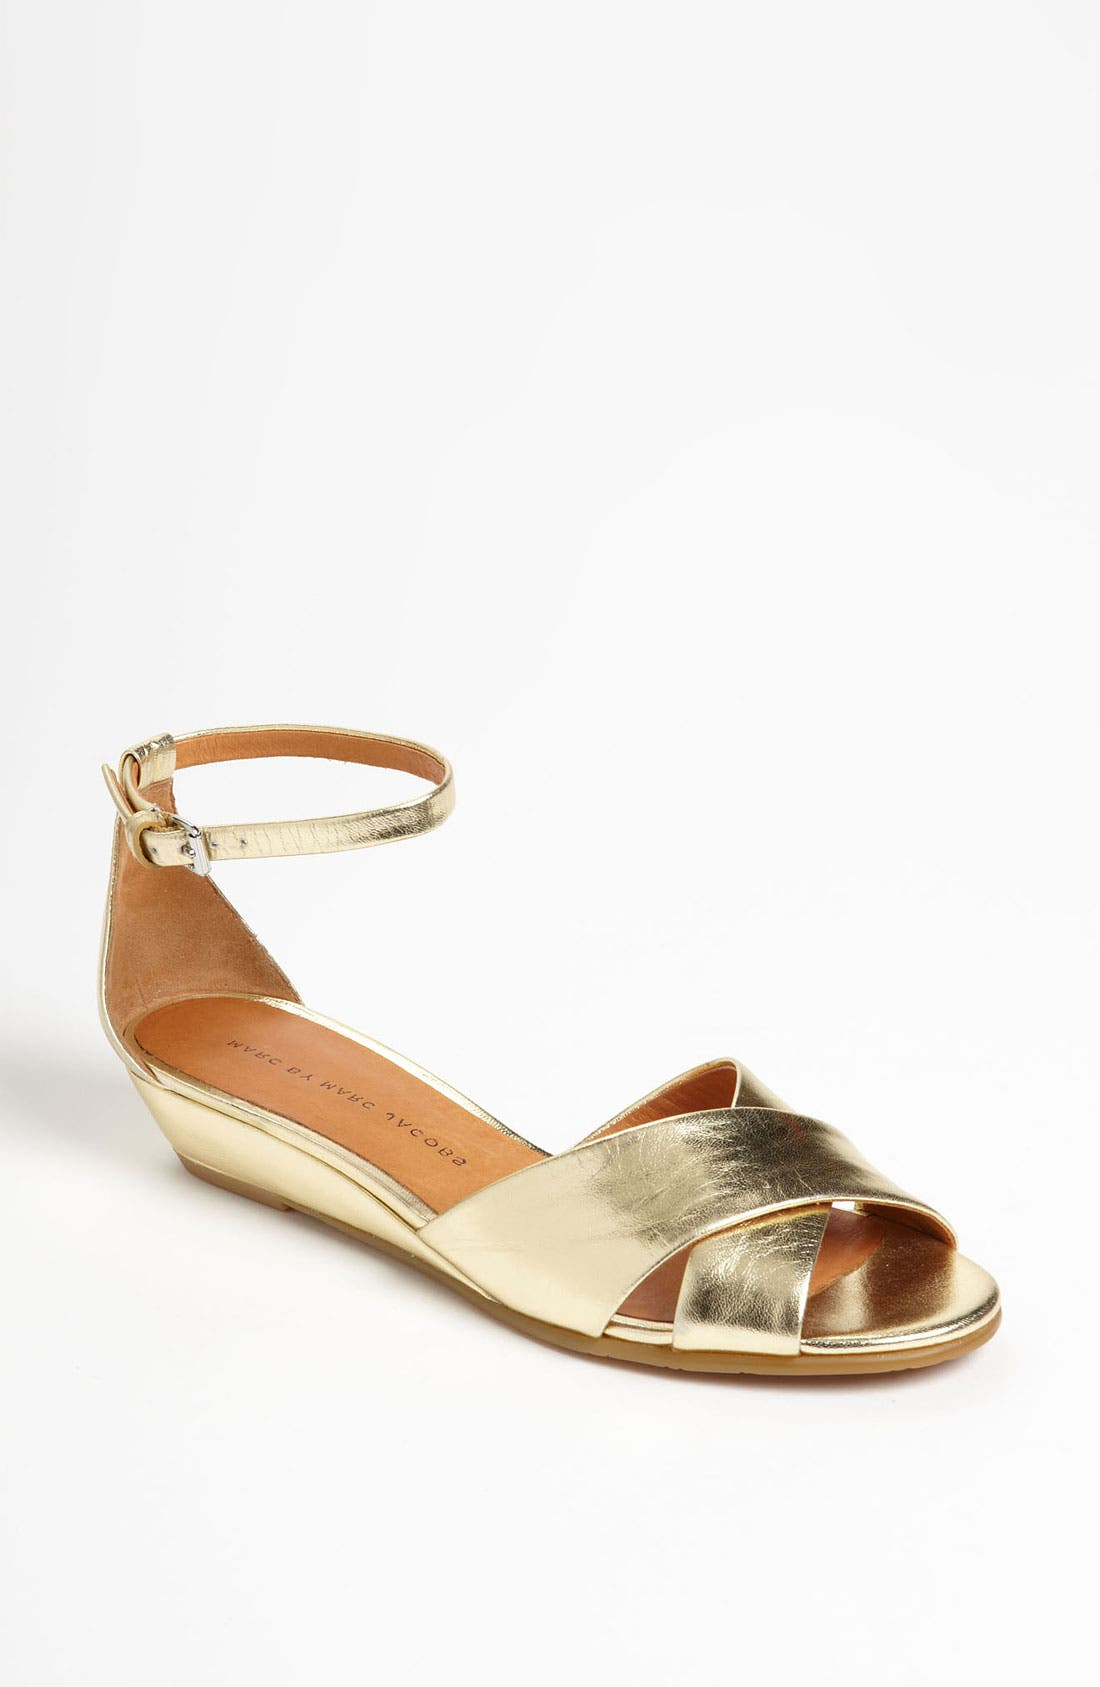 Main Image - MARC BY MARC JACOBS 'Classic' Wedge Sandal